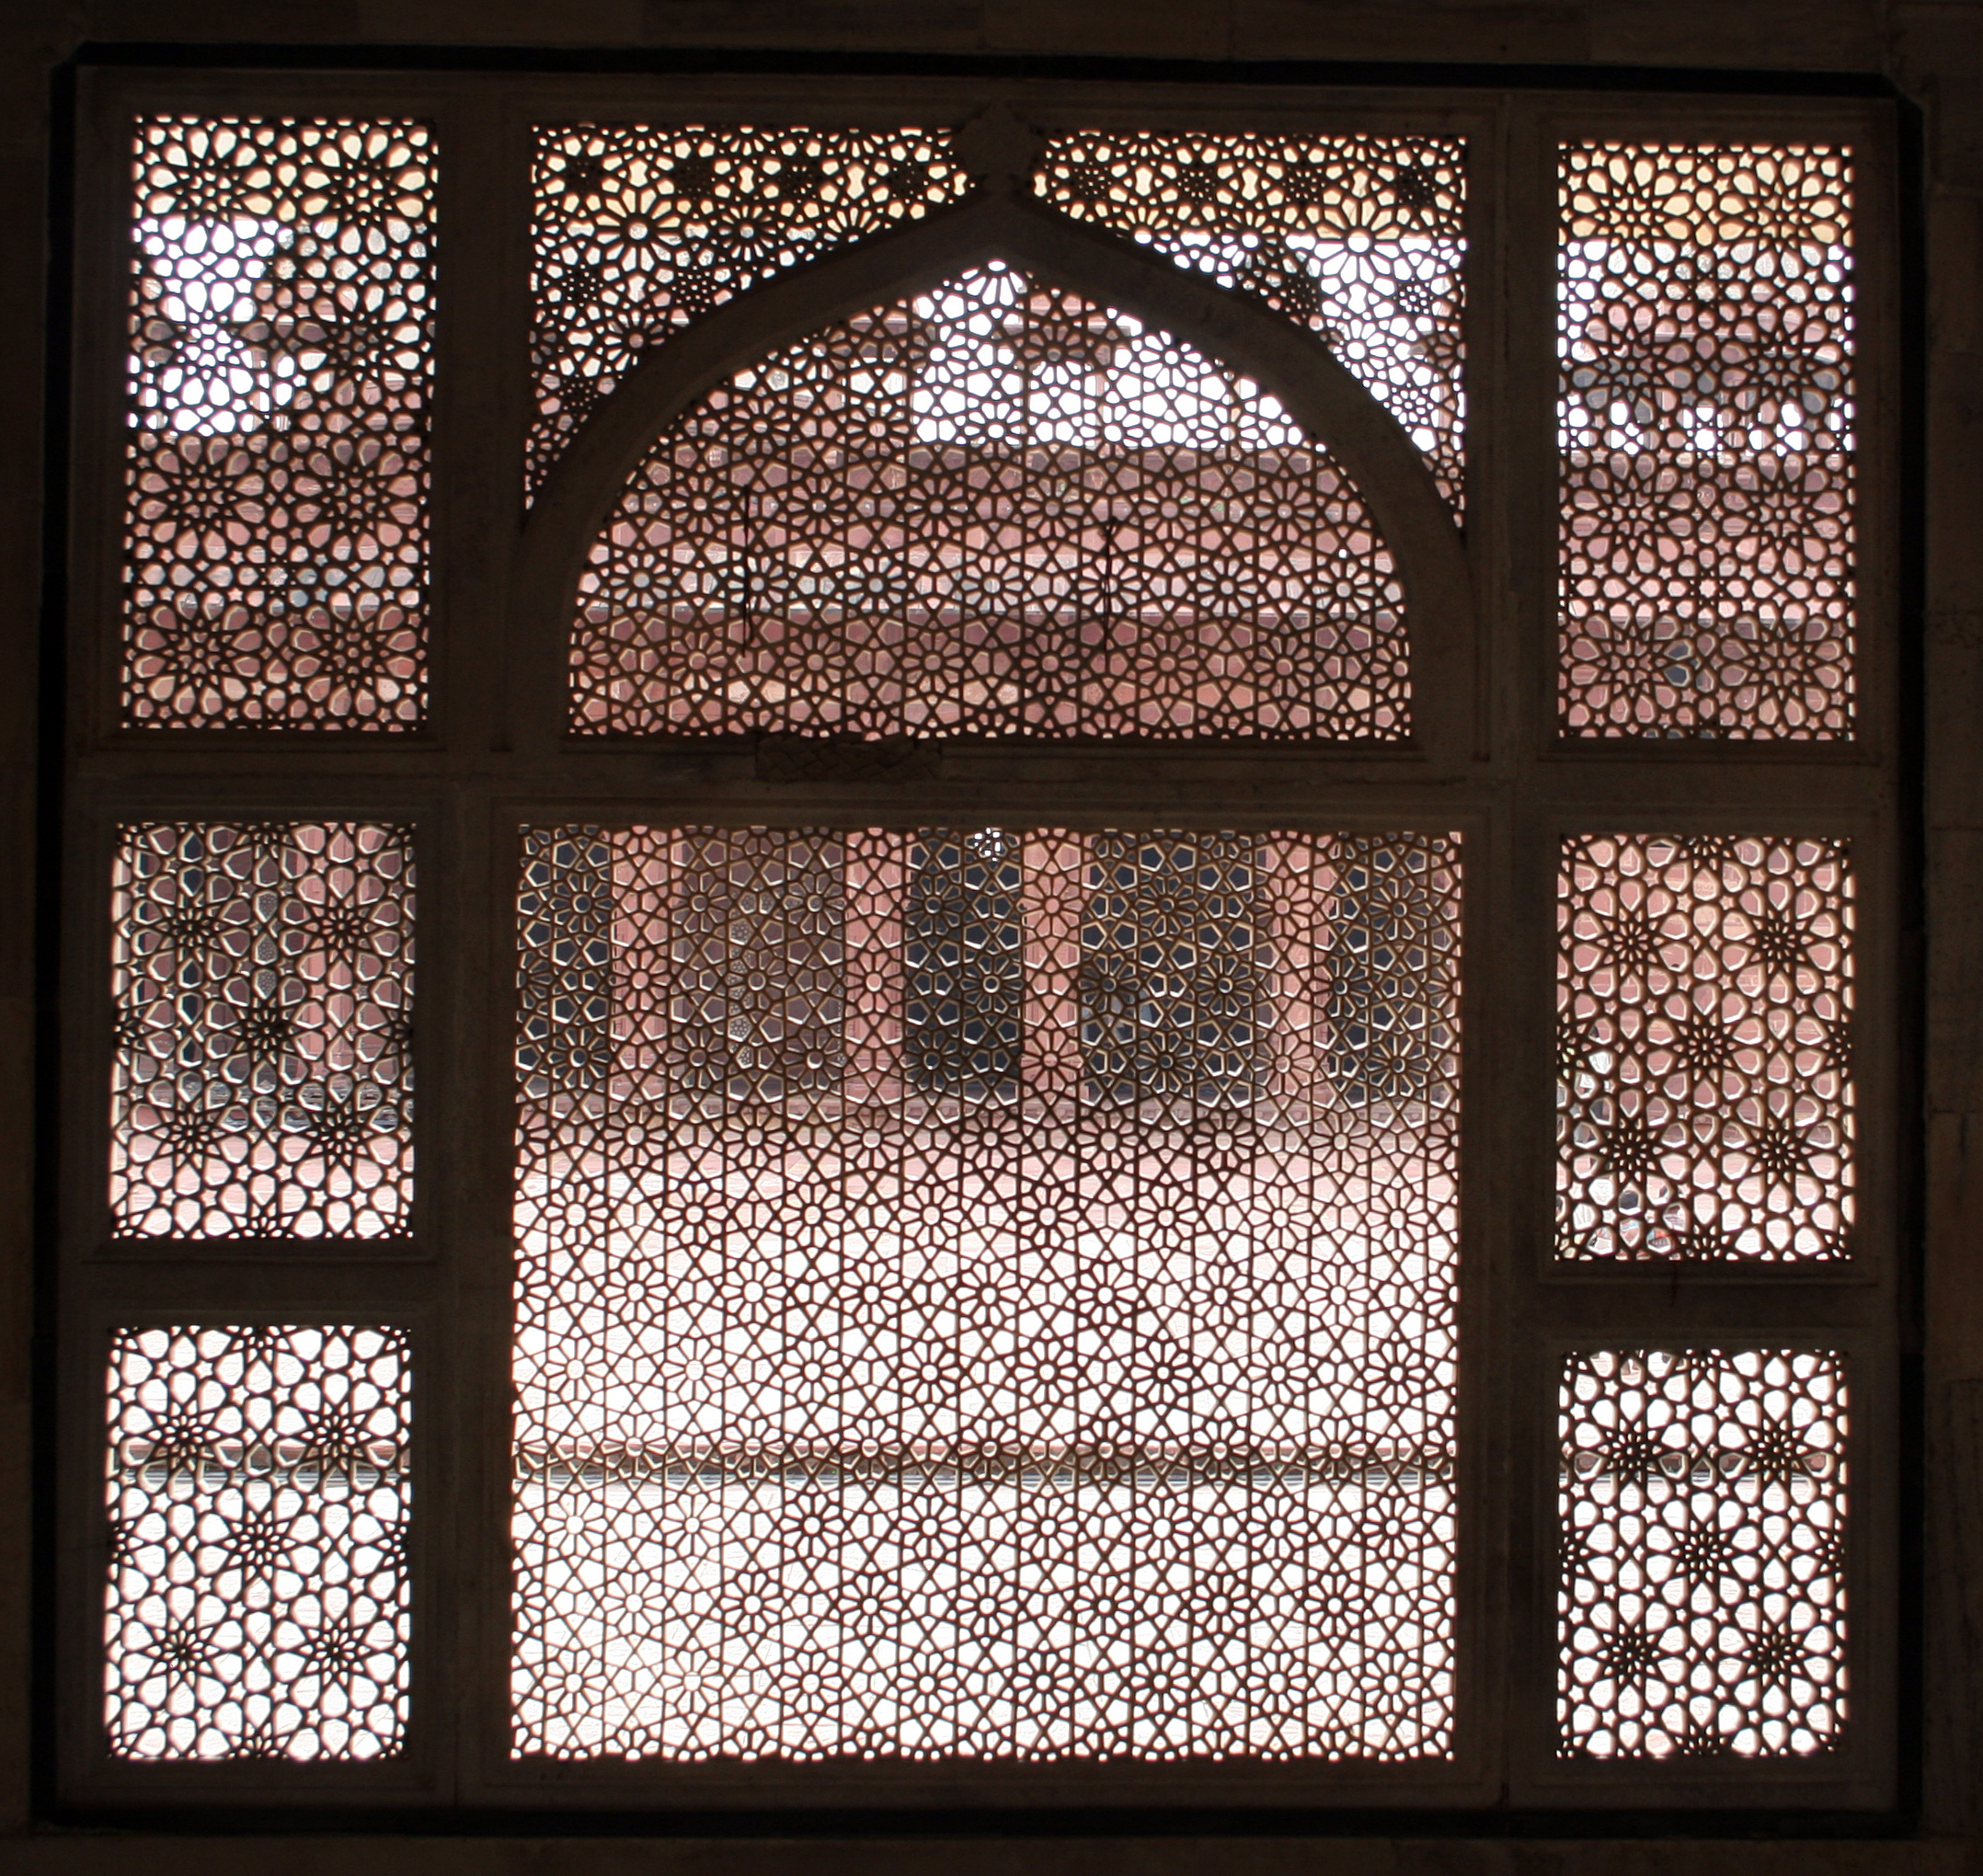 File salim chishti tomb wikimedia commons for Window design hd image